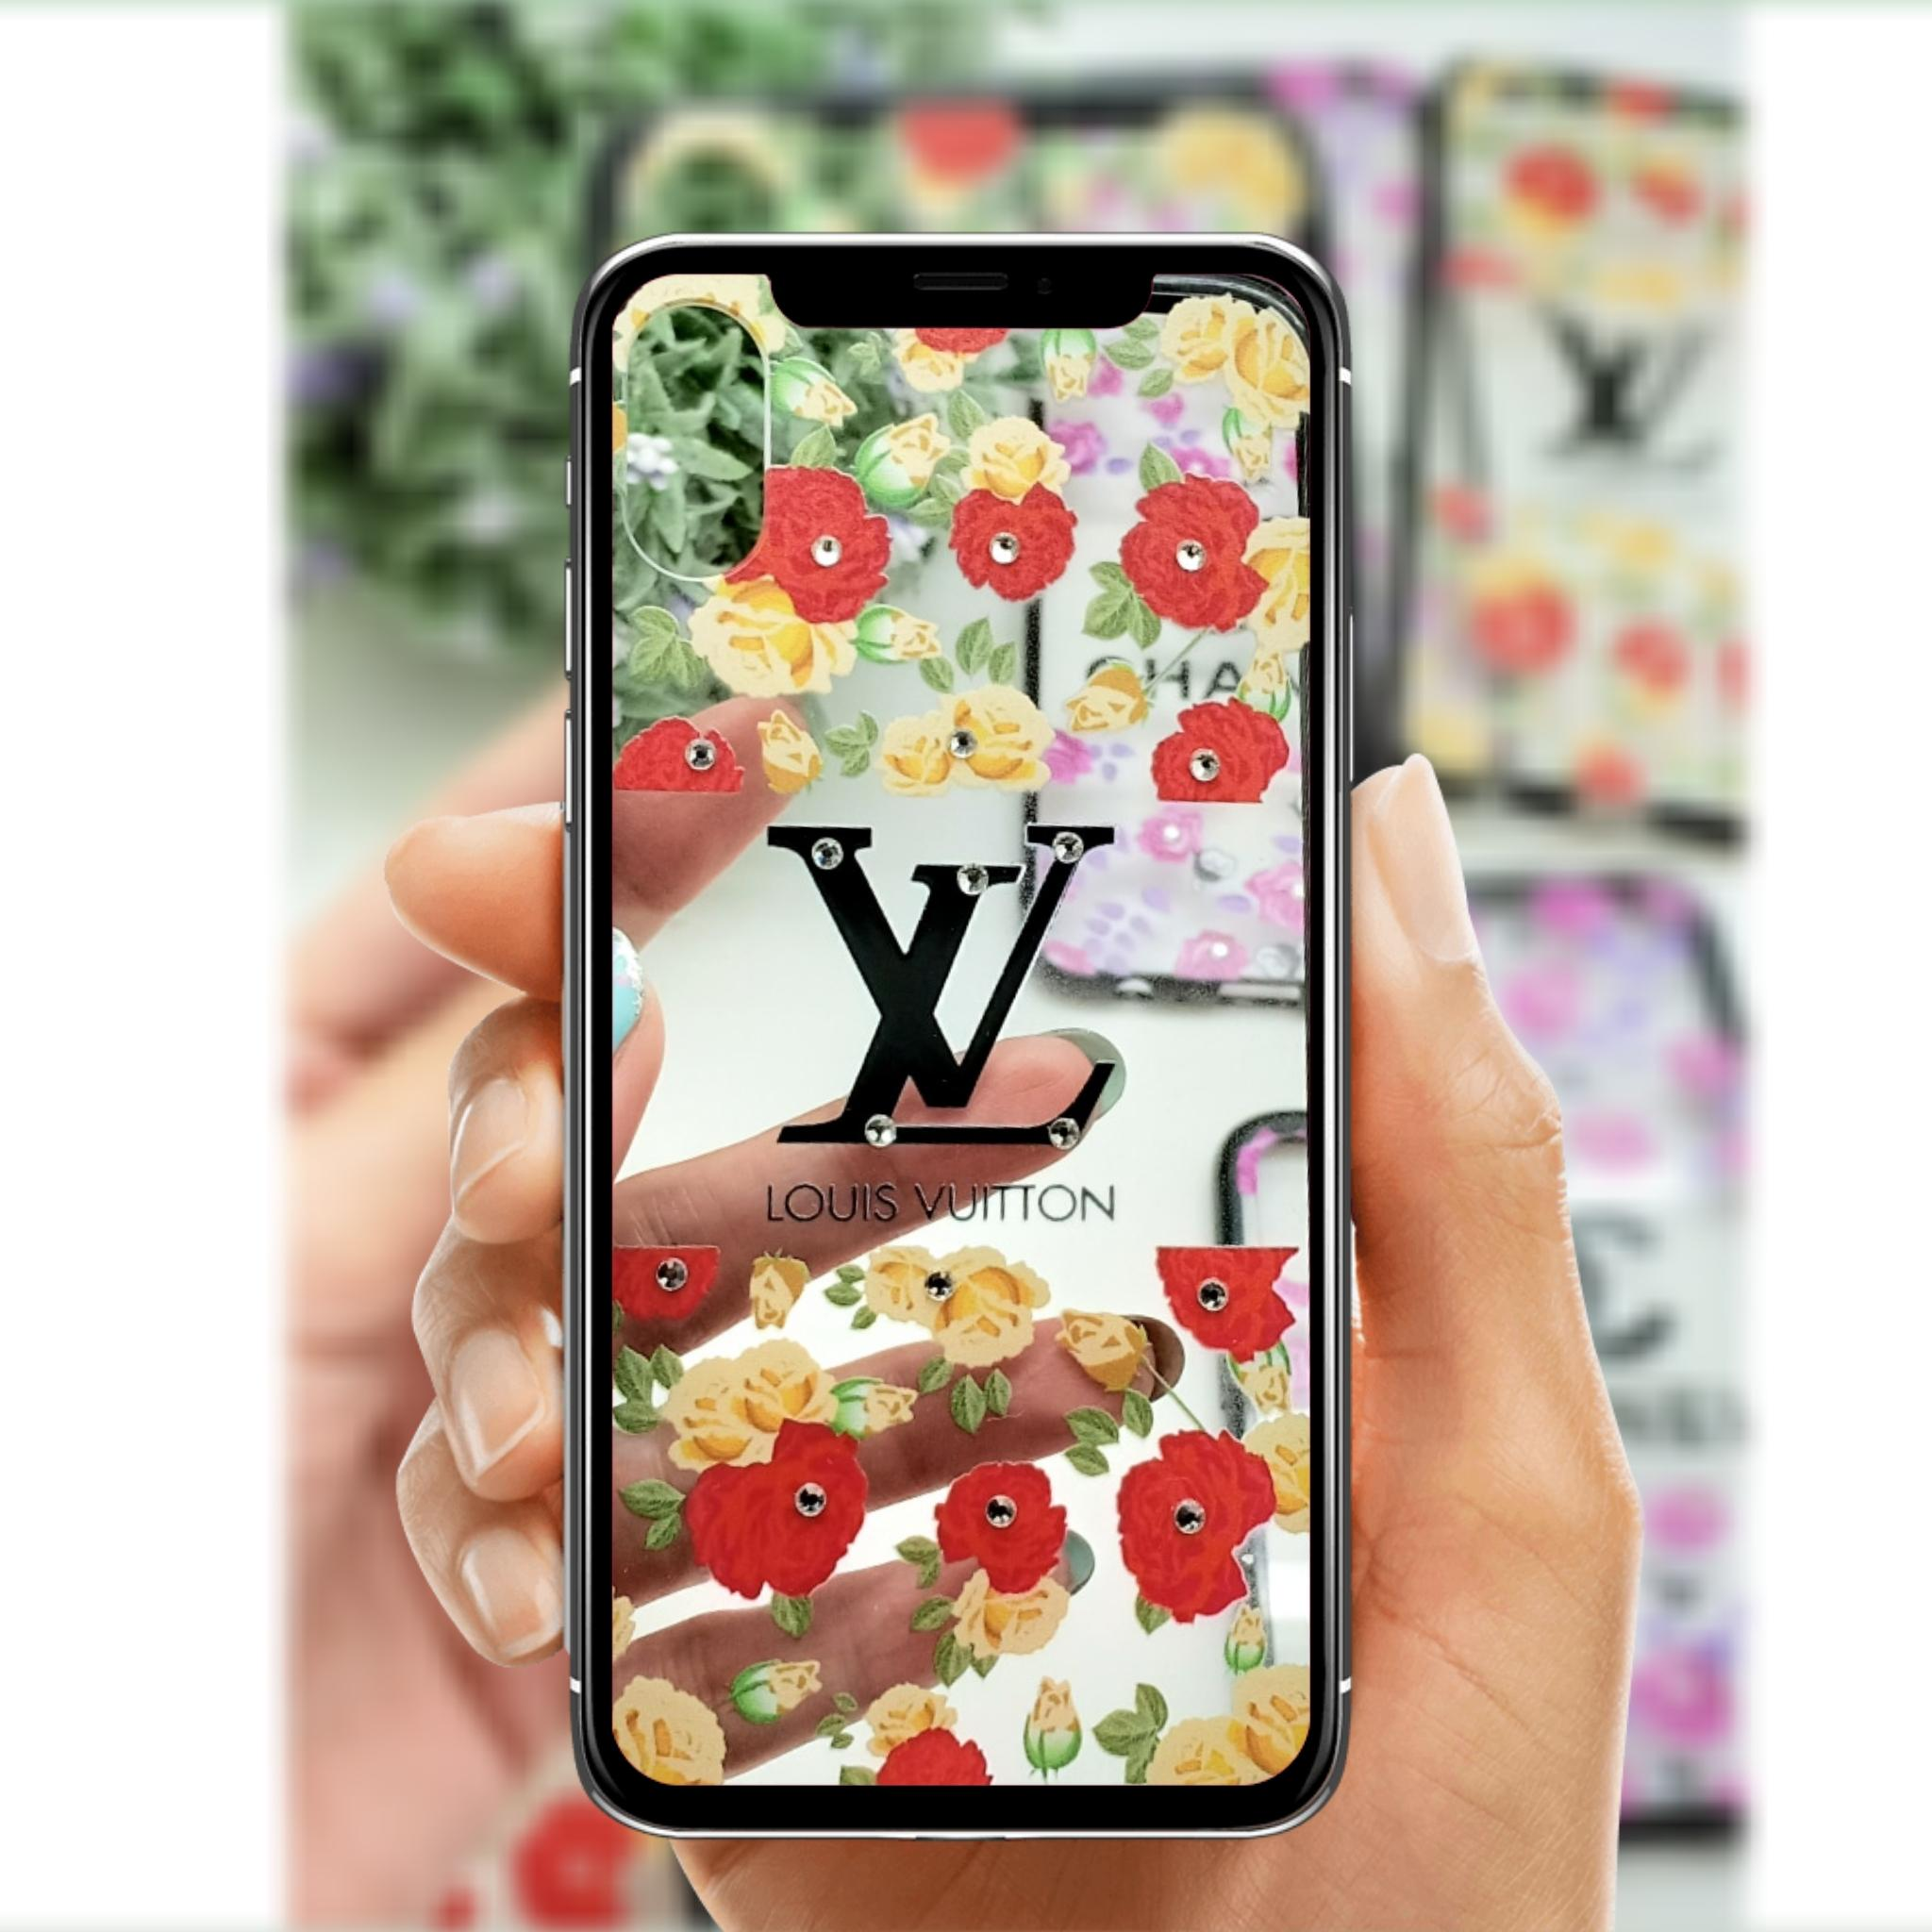 LV SUMMER Case iphone 6/6+/7/7+/8/8+/ iphone X  oppo f1s/ F5/ f7/ Soft case iphone/ soft case oppo